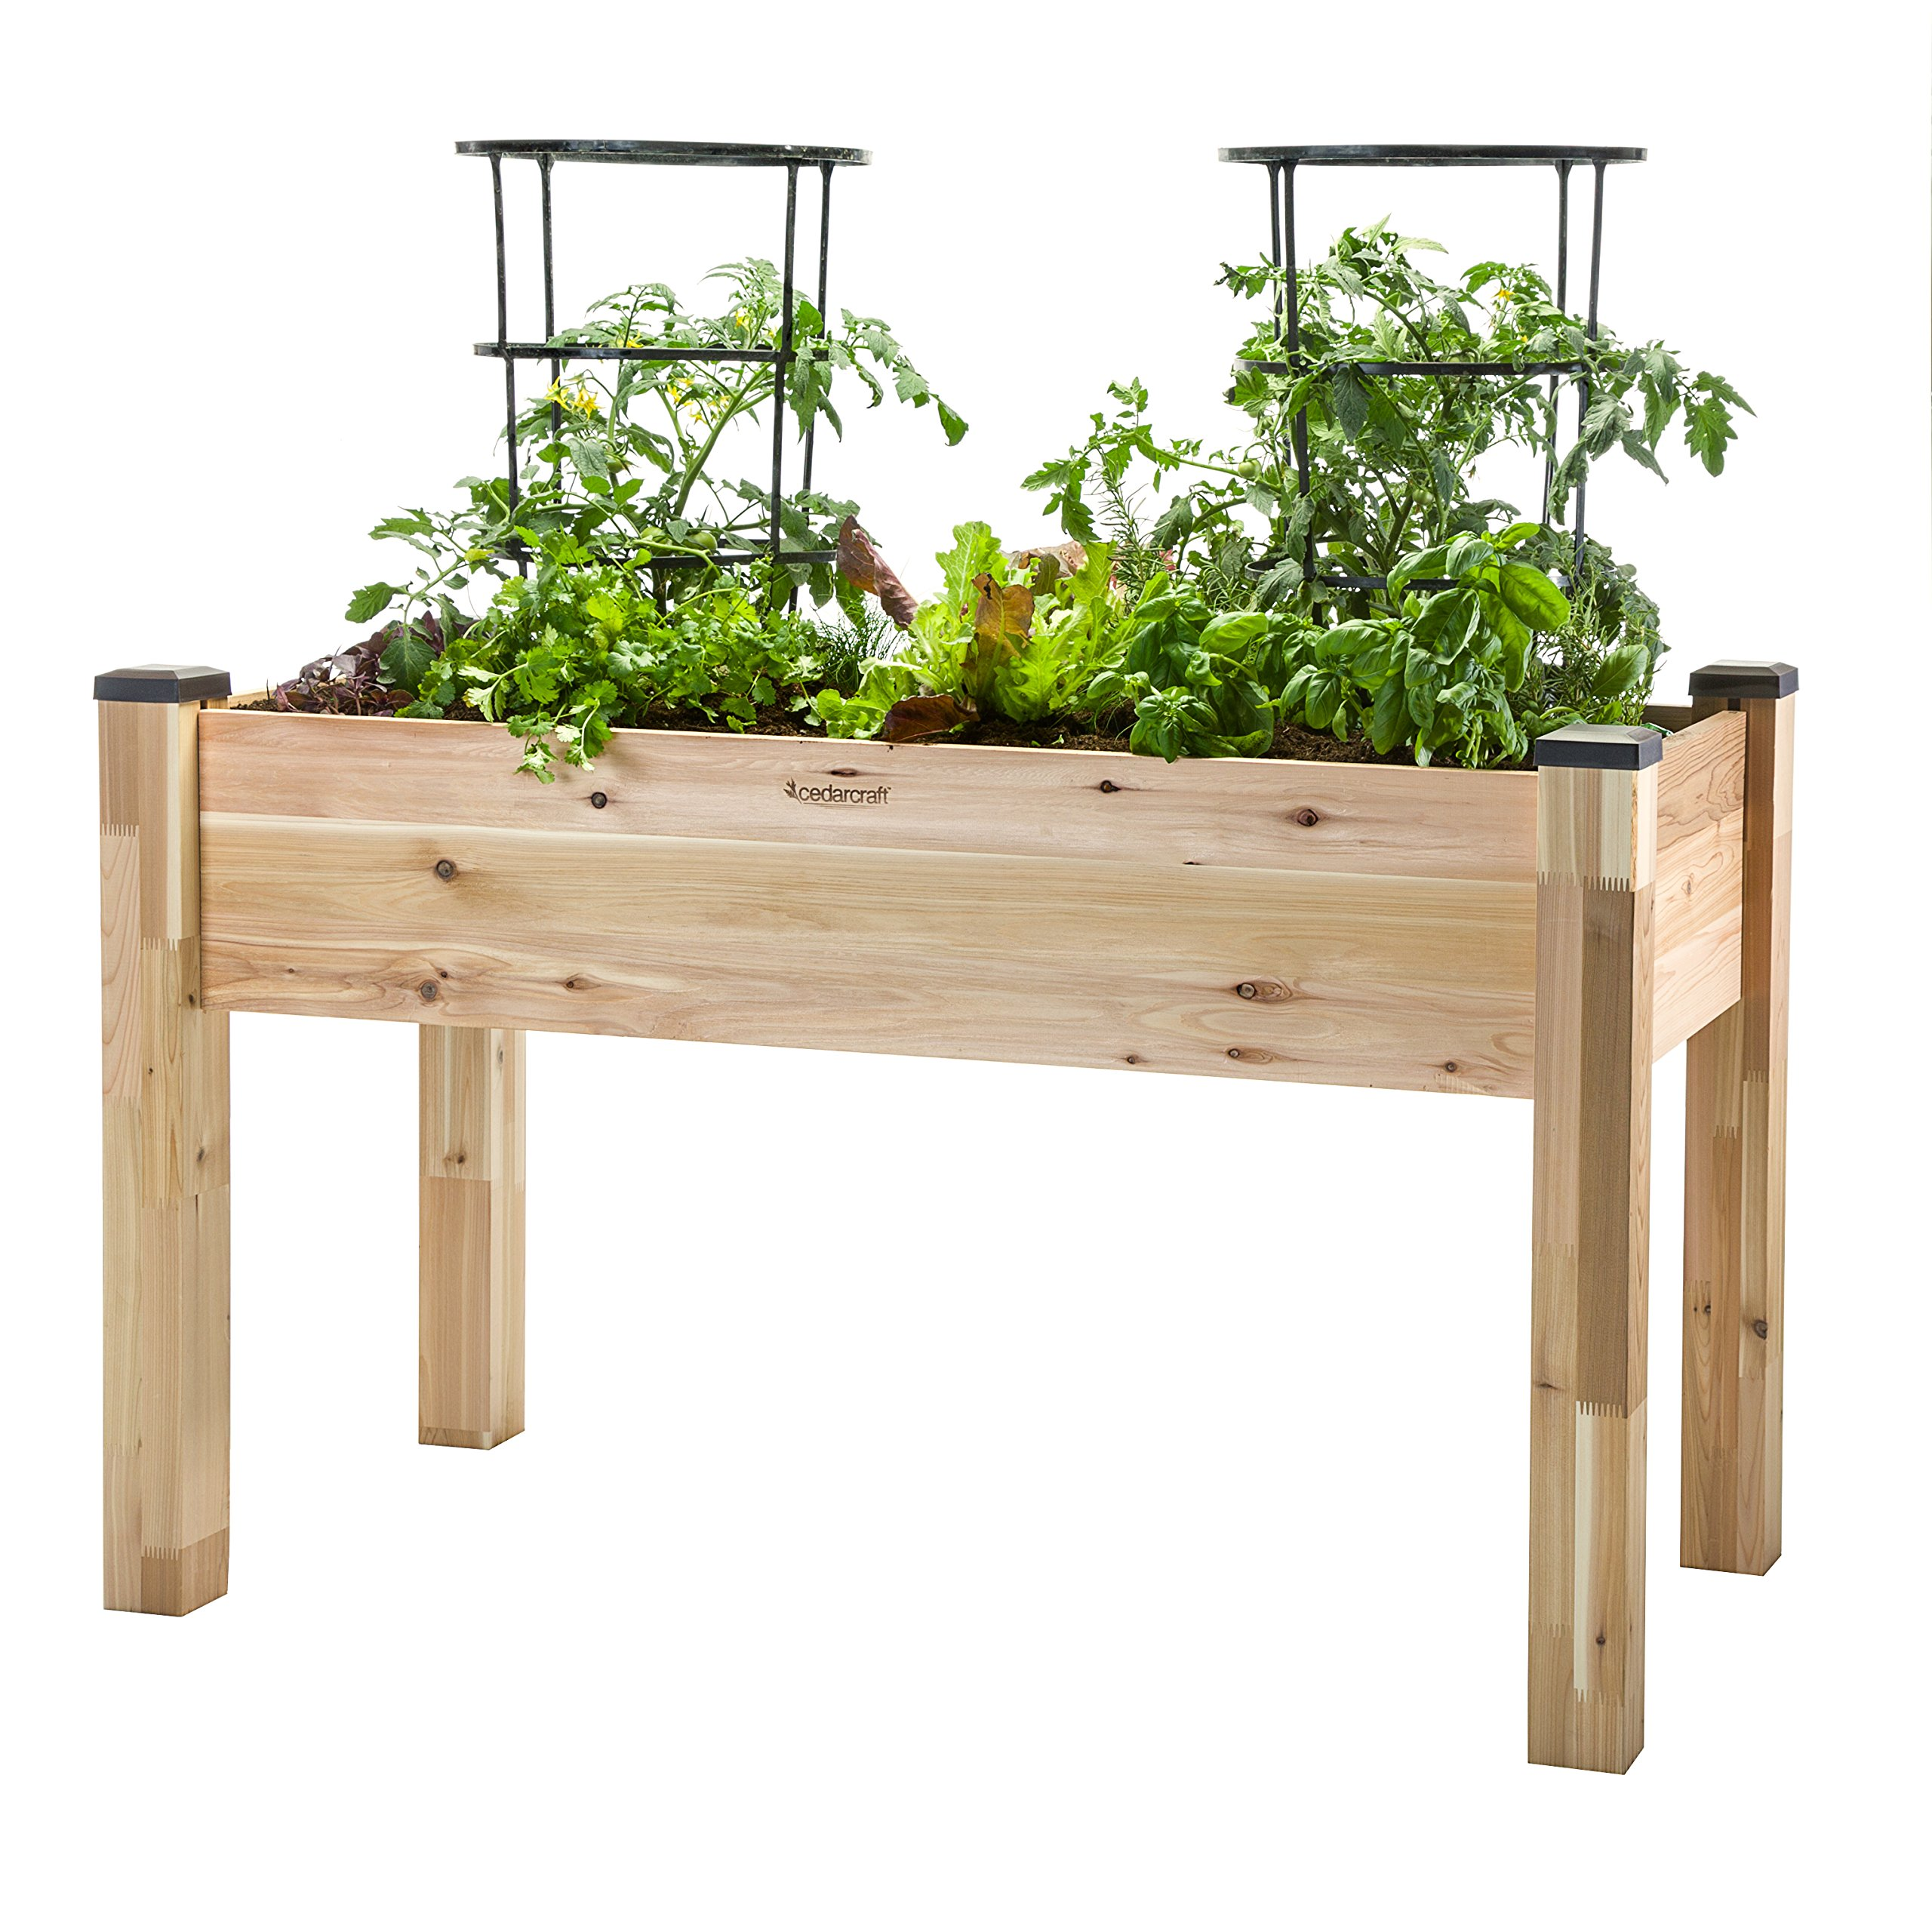 "CedarCraft Elevated Cedar Planter (23"" X 49"" X 30"") - Grow Fresh Vegetables, Herb Gardens, Flowers & Succulents. Beautiful Raised Garden Bed for a Deck, Patio or Yard Gardening. No Tools Required."